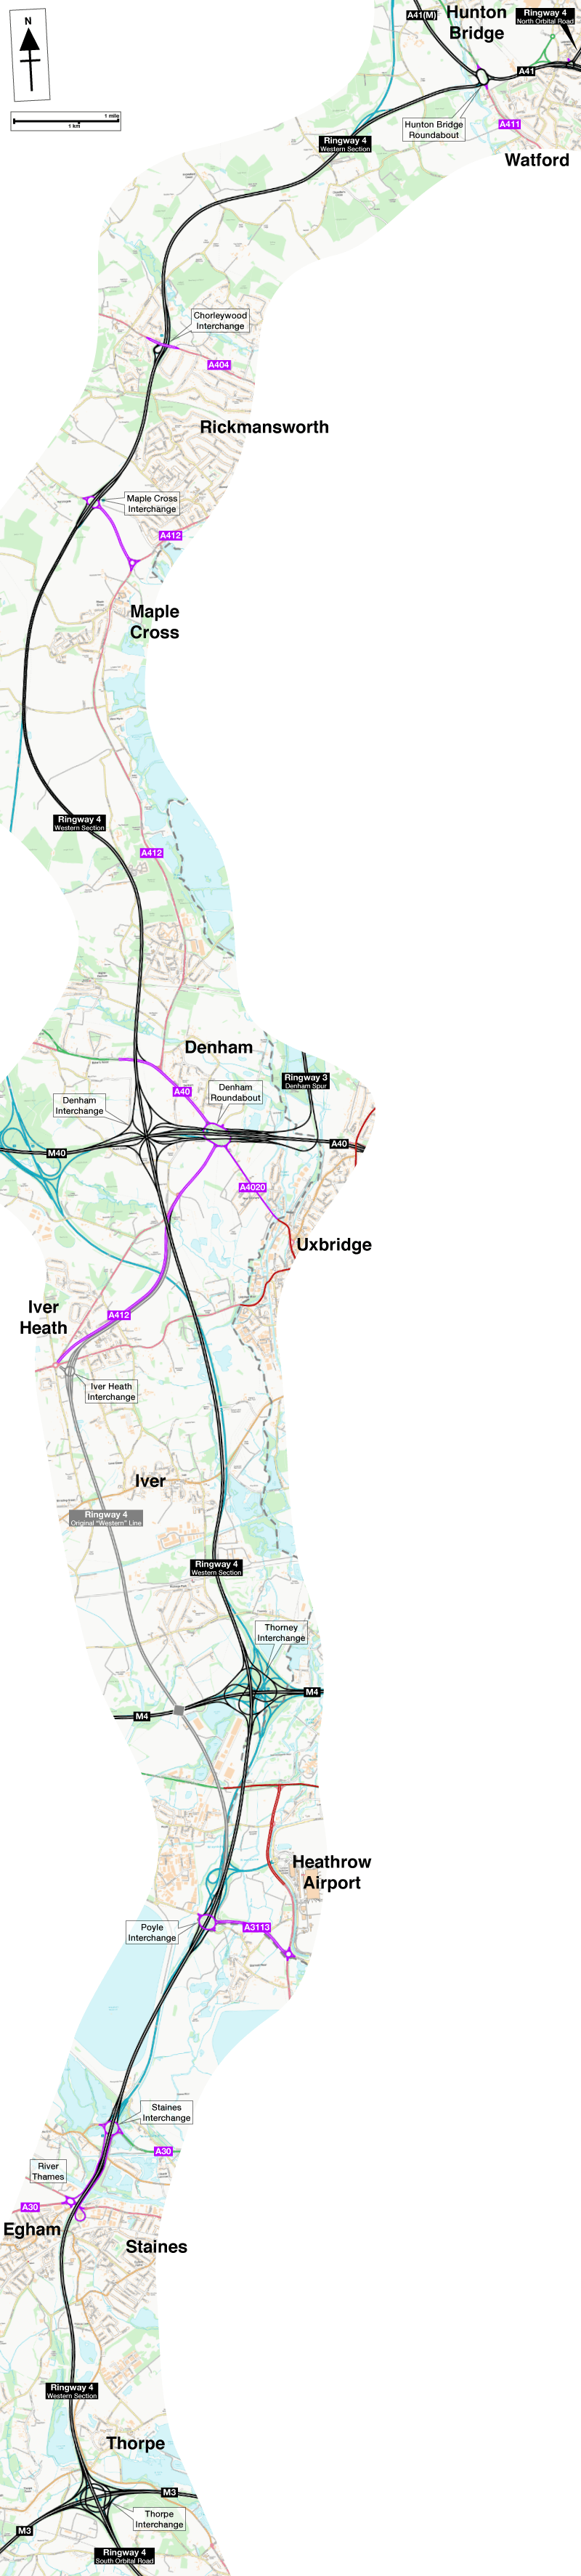 Map of Ringway 4 Western Section